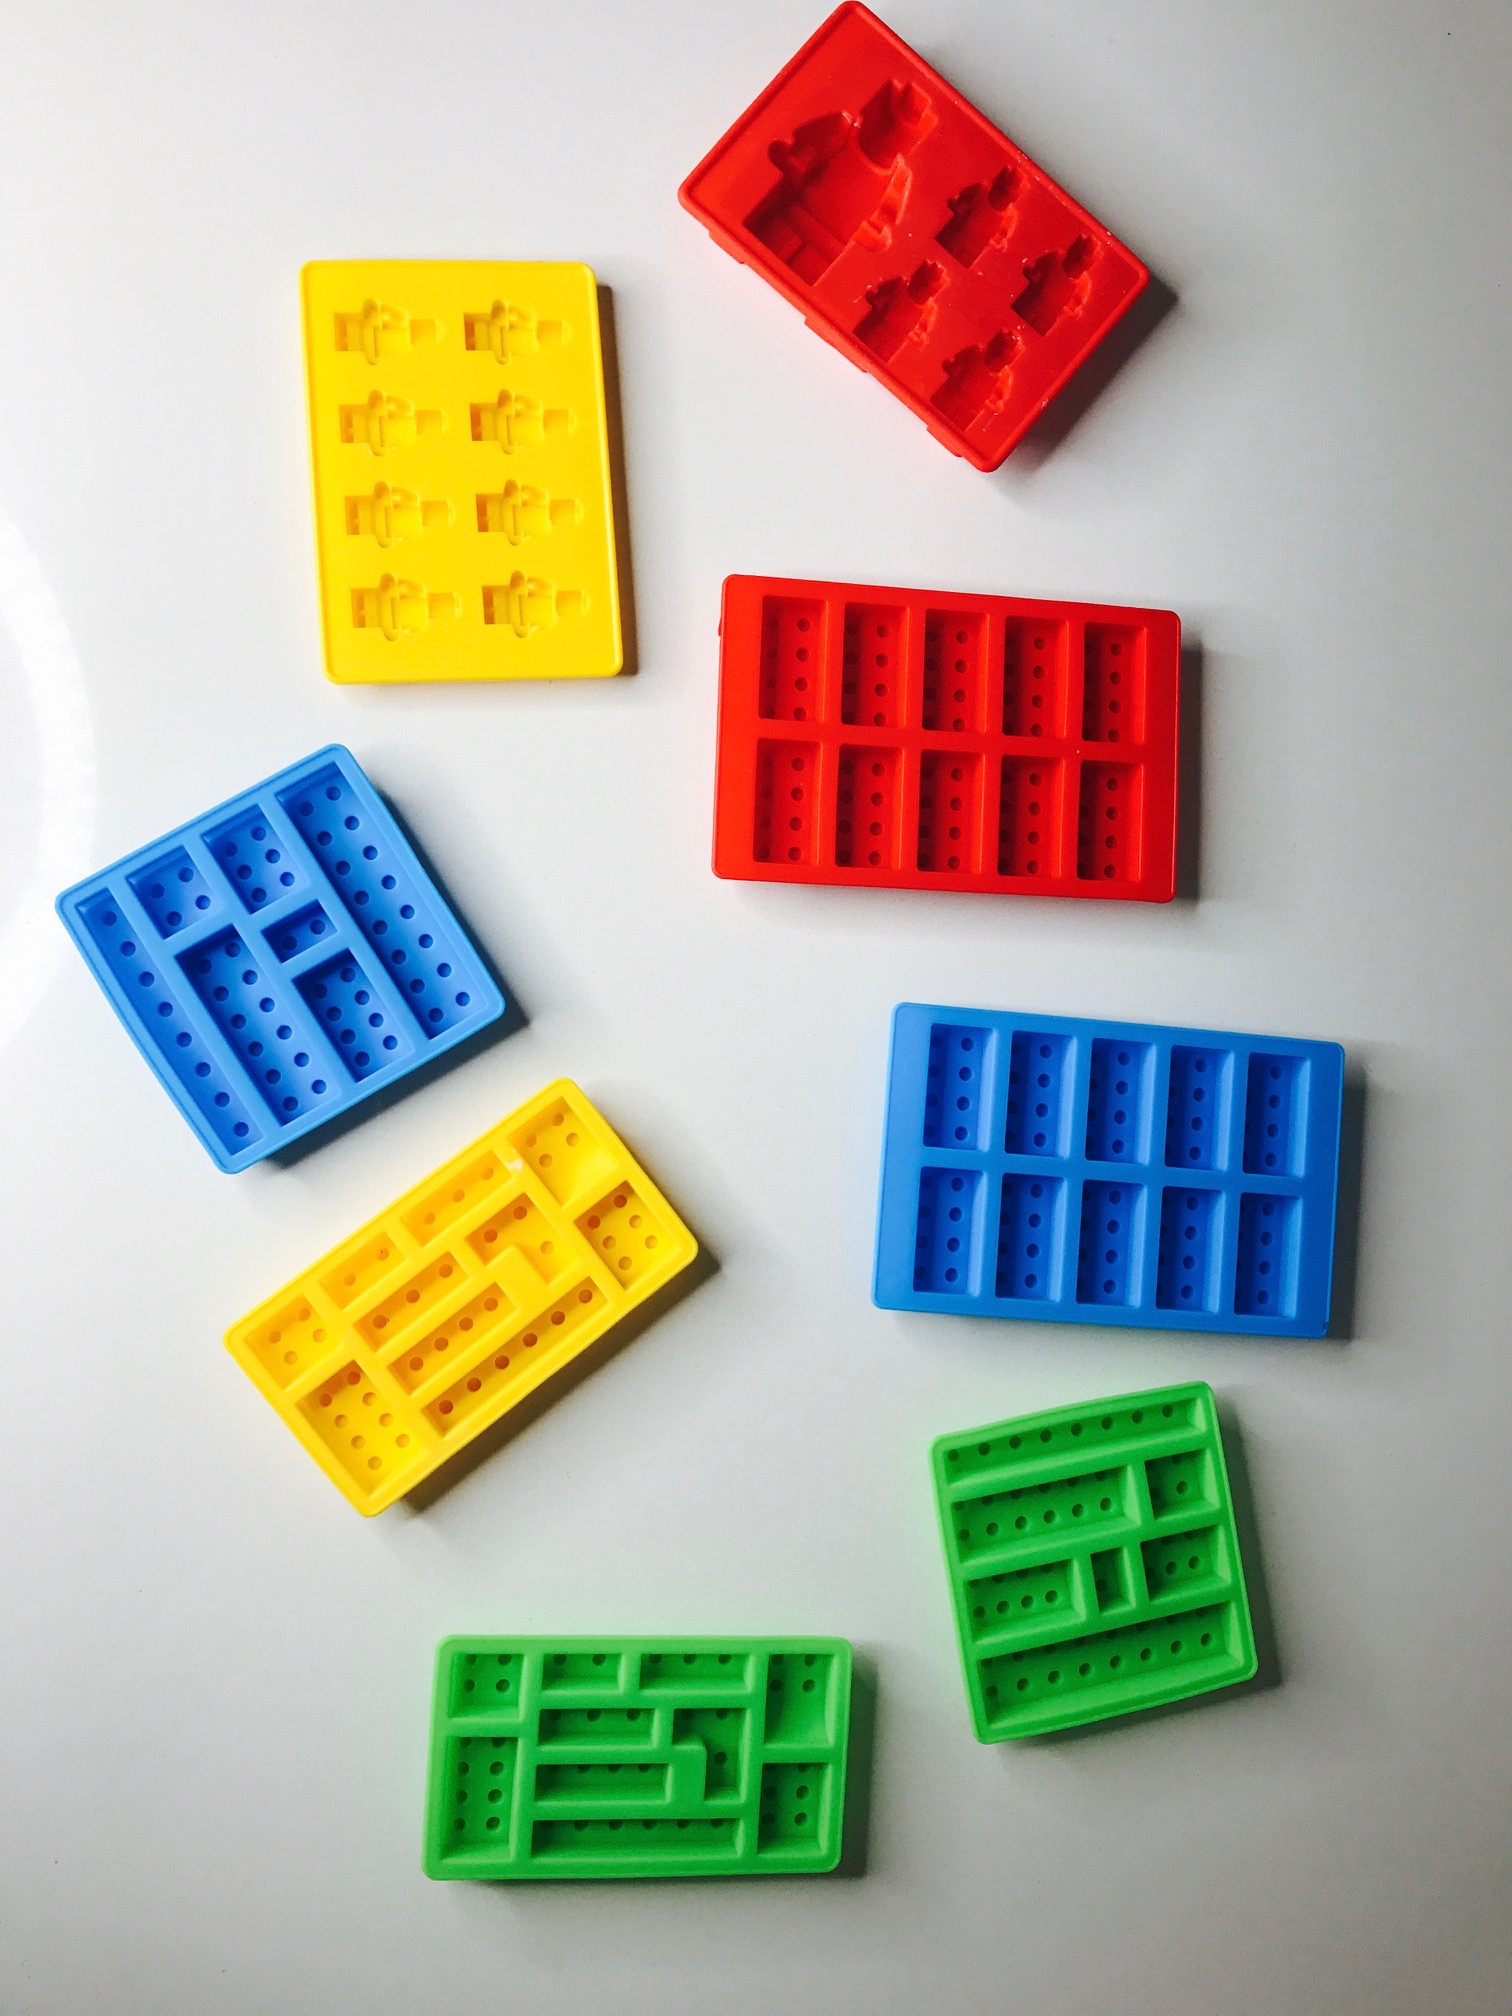 LEGO molds are the best! You can use these to make LEGO chocolates, crayons and even magnets!